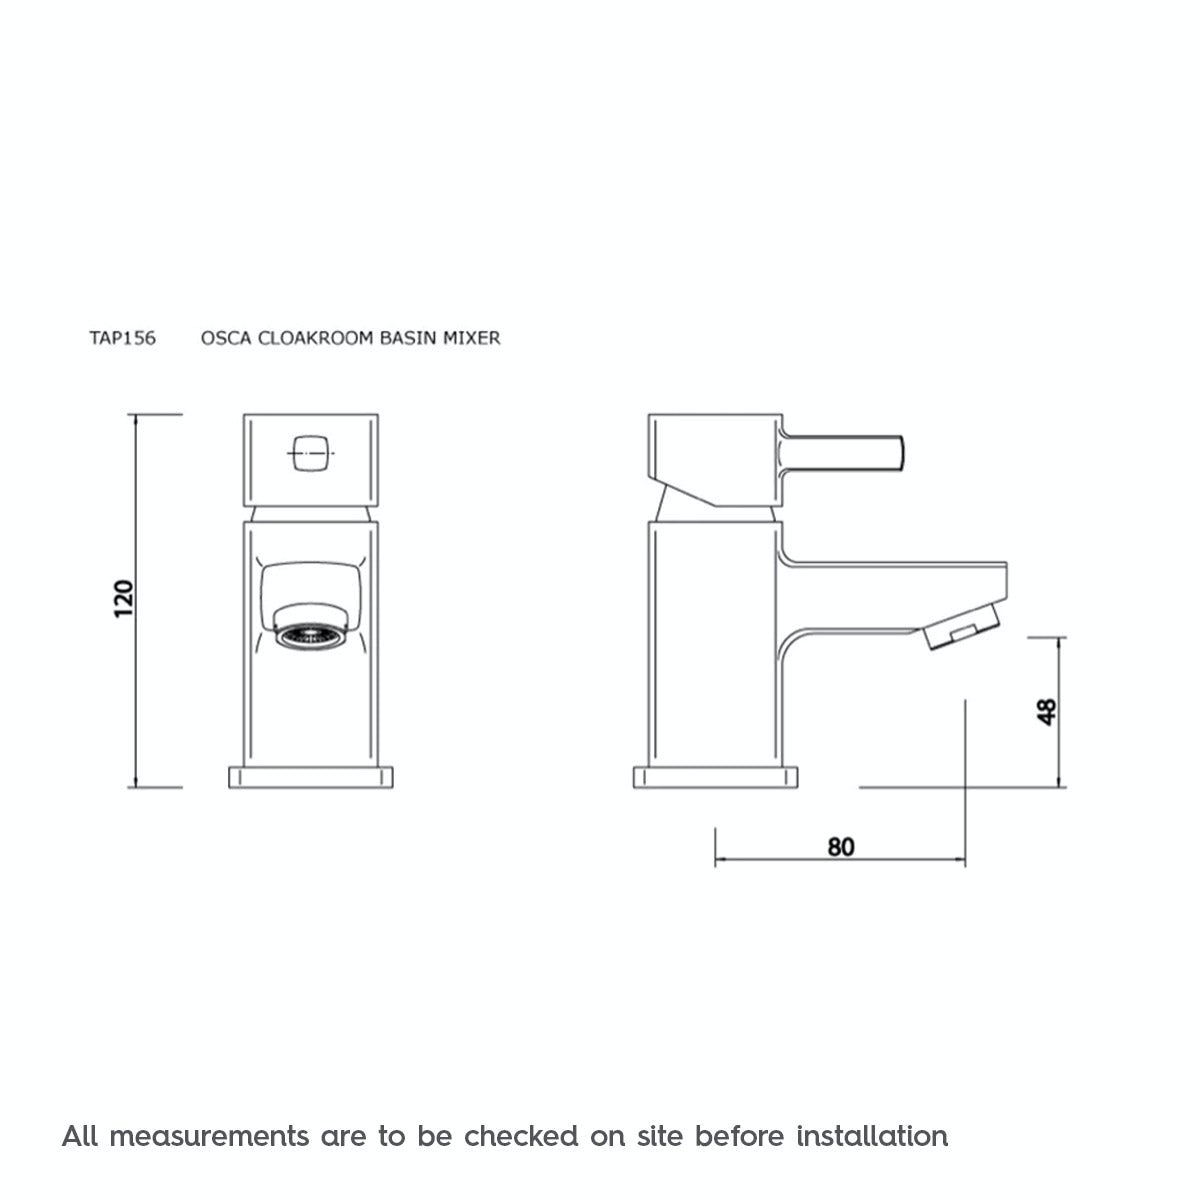 Dimensions for Orchard Derwent cloakroom basin mixer tap